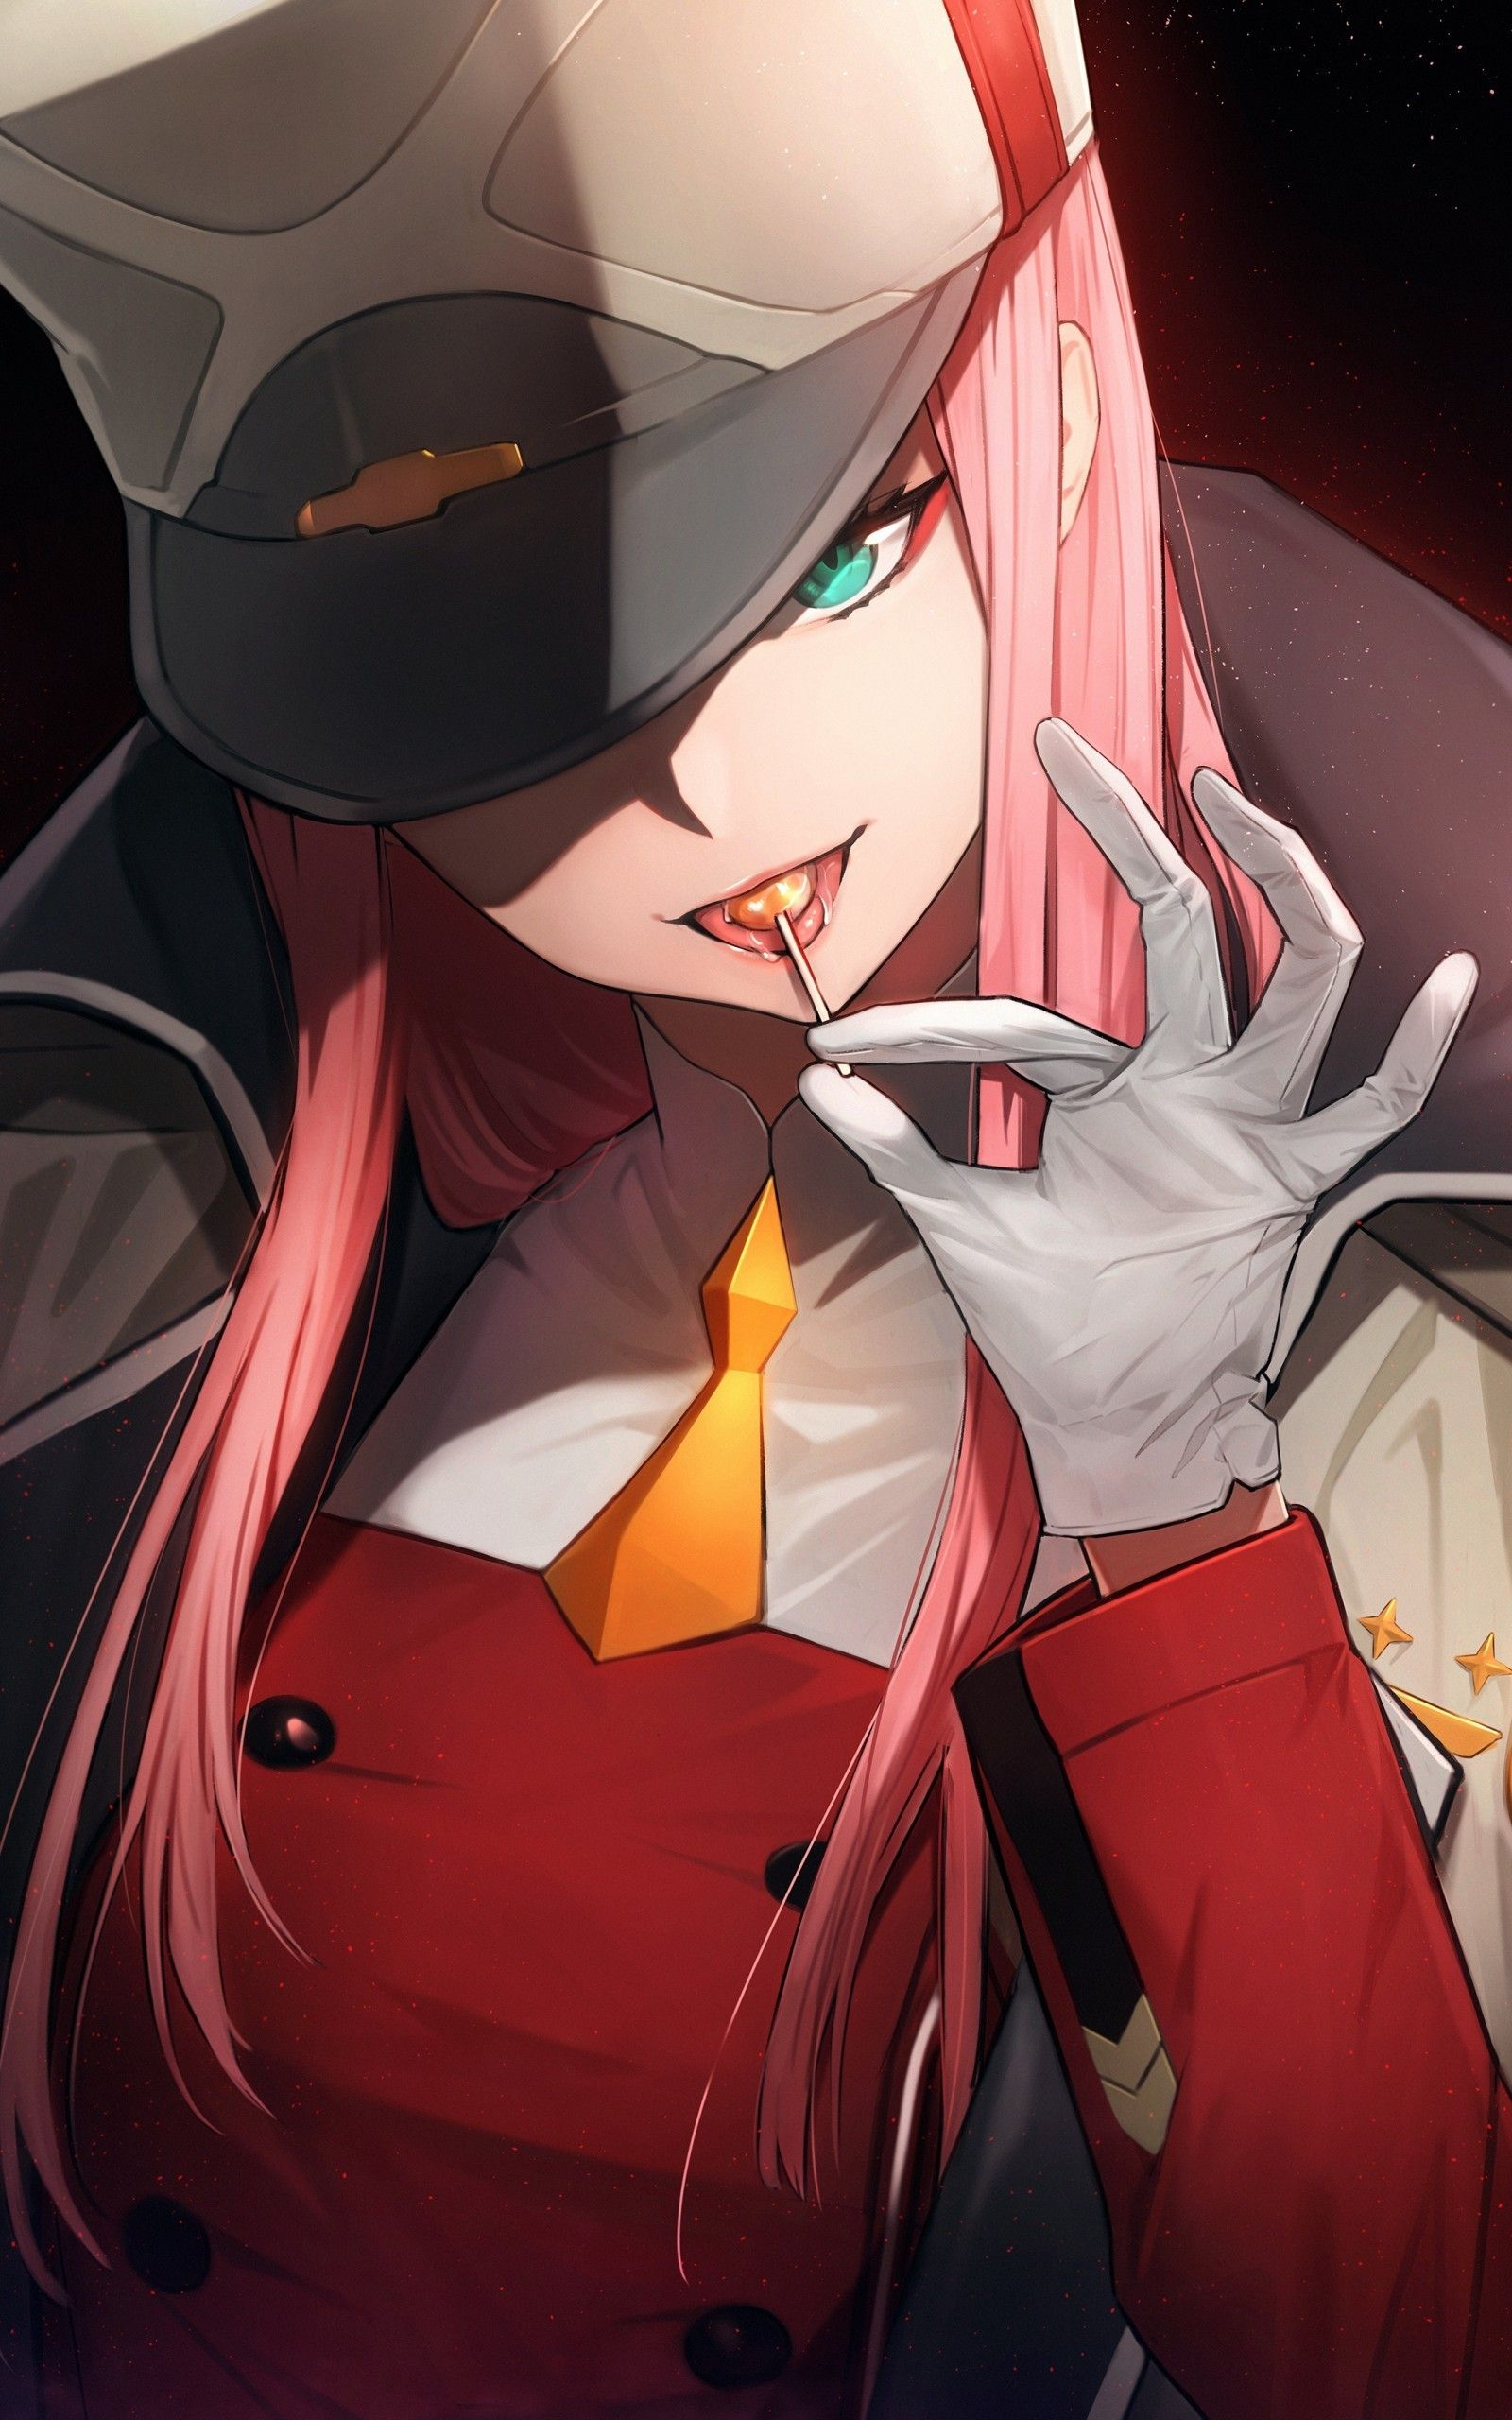 Anime Aesthetics Zero Two Wallpapers Wallpaper Cave The great collection of zero two wallpaper for desktop, laptop and mobiles. anime aesthetics zero two wallpapers